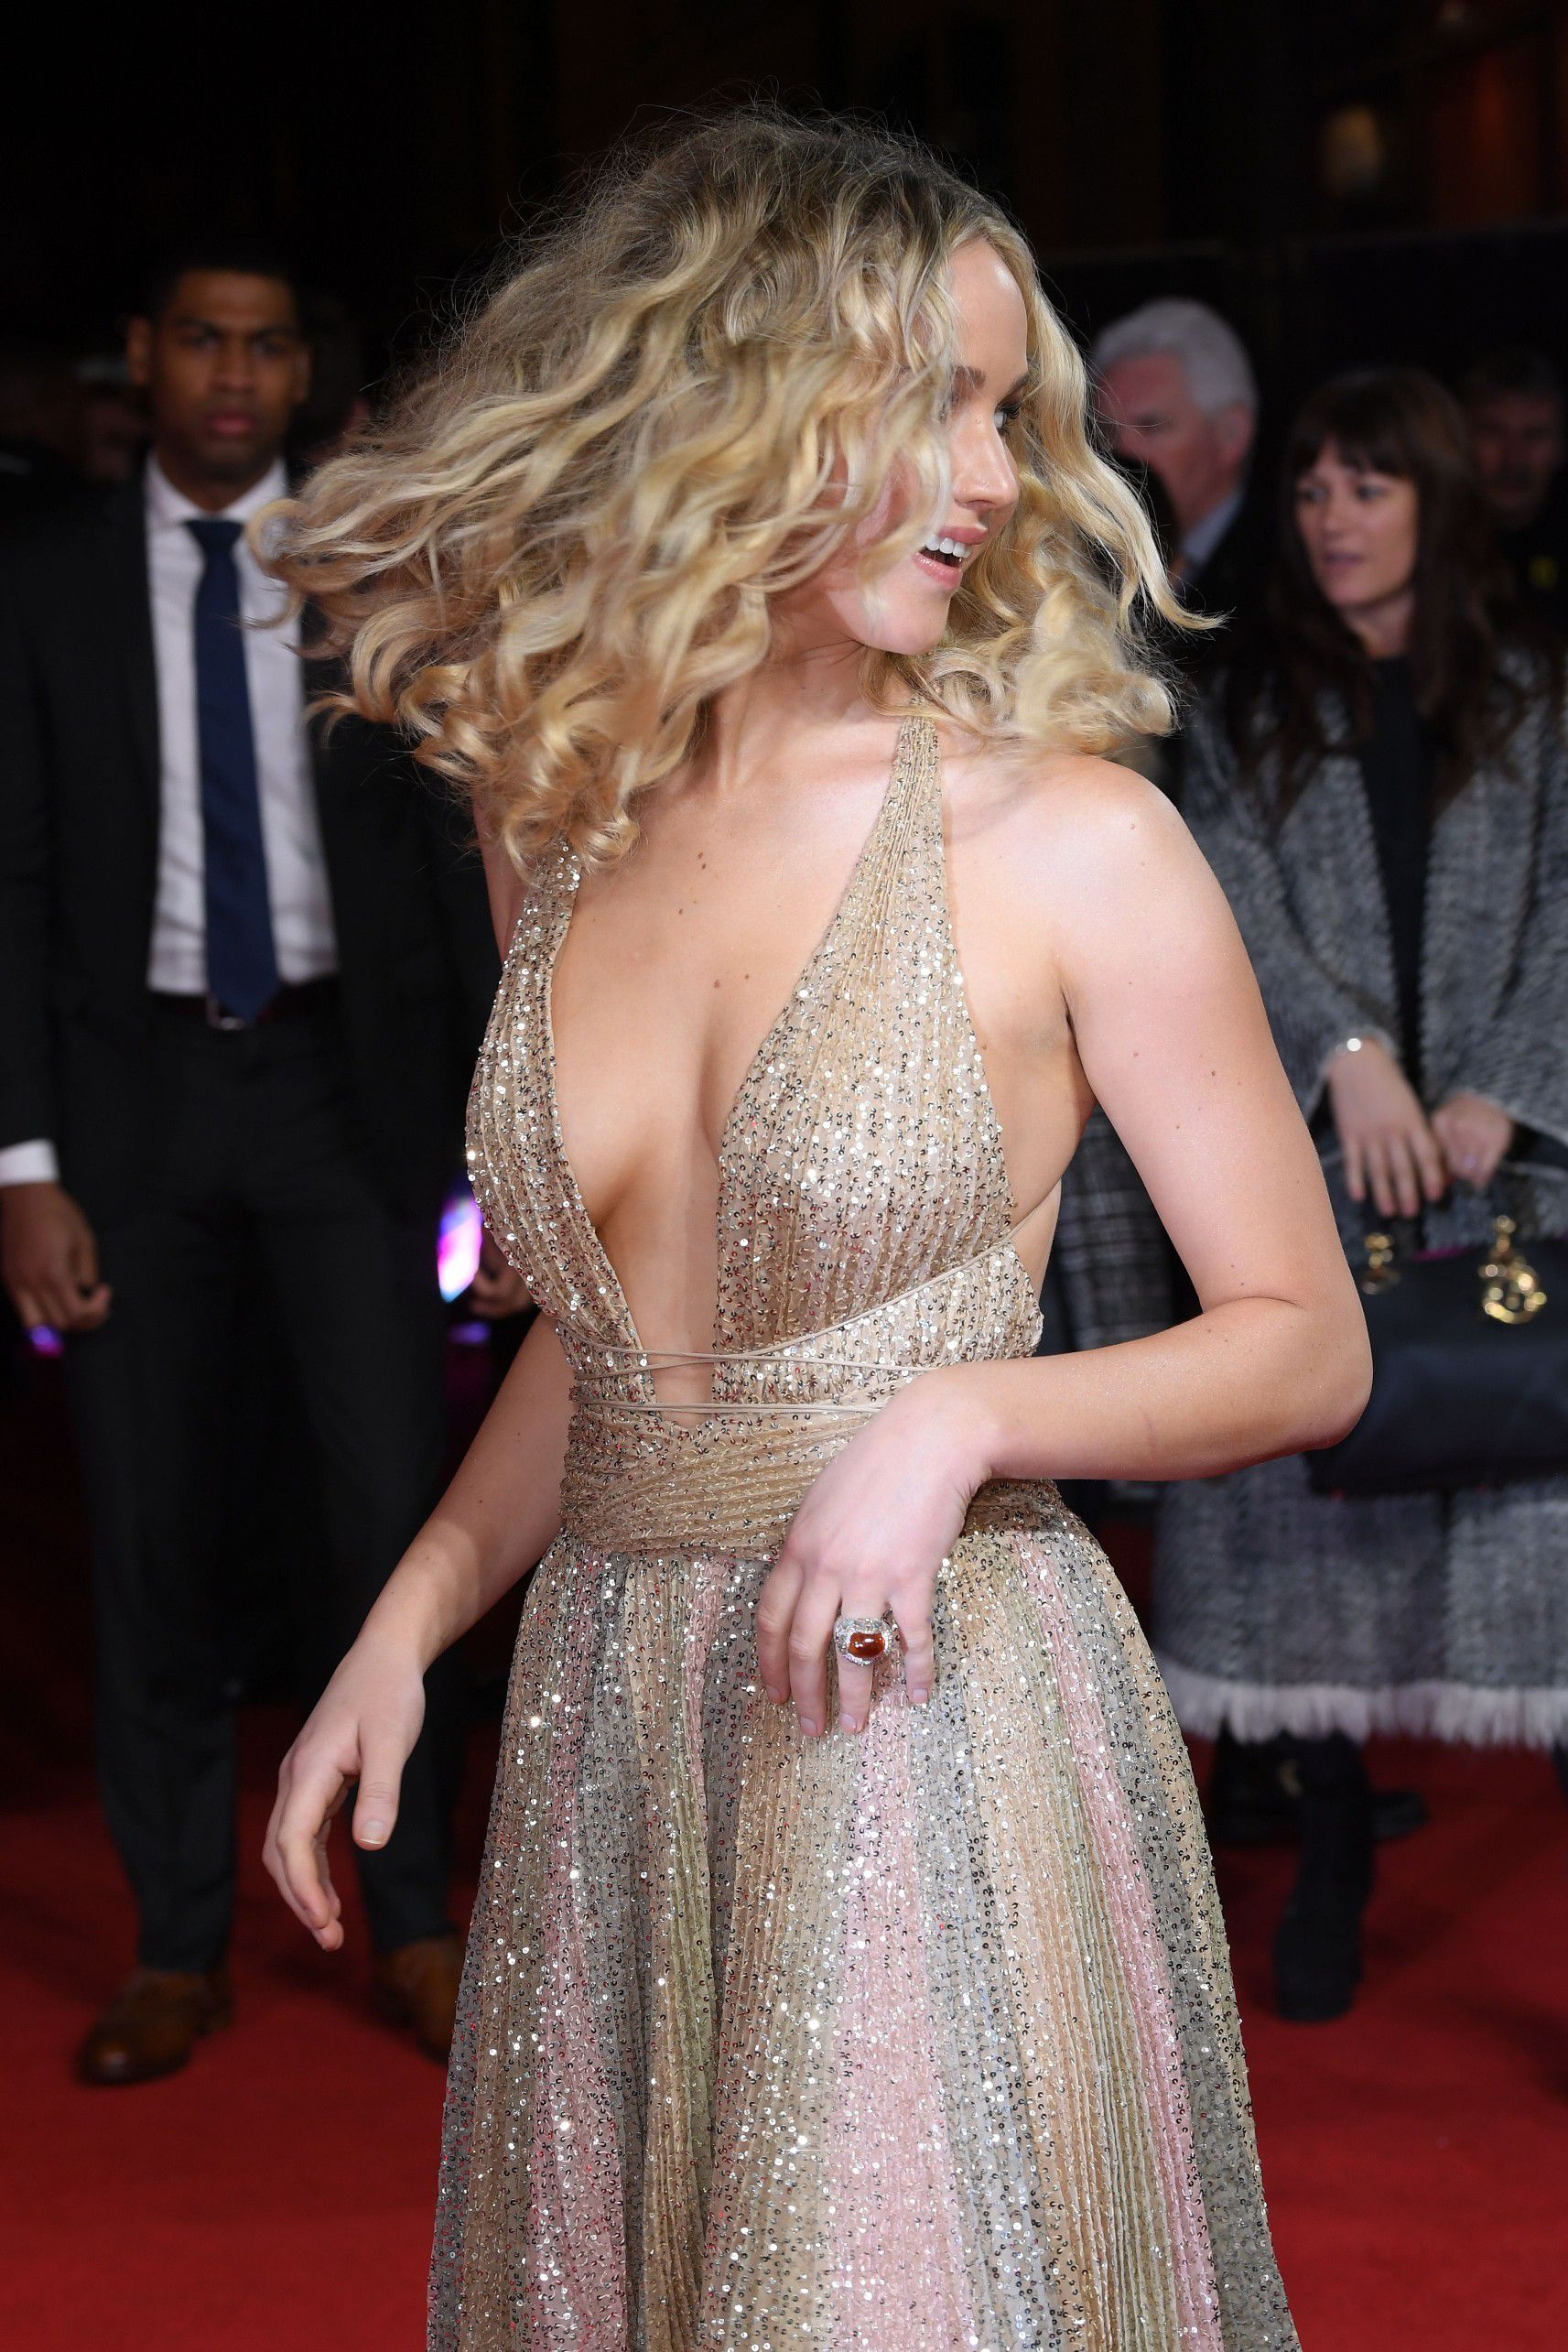 jennifer-lawrence-cleavage-at-red-sparrow-premiere-in-london-8404